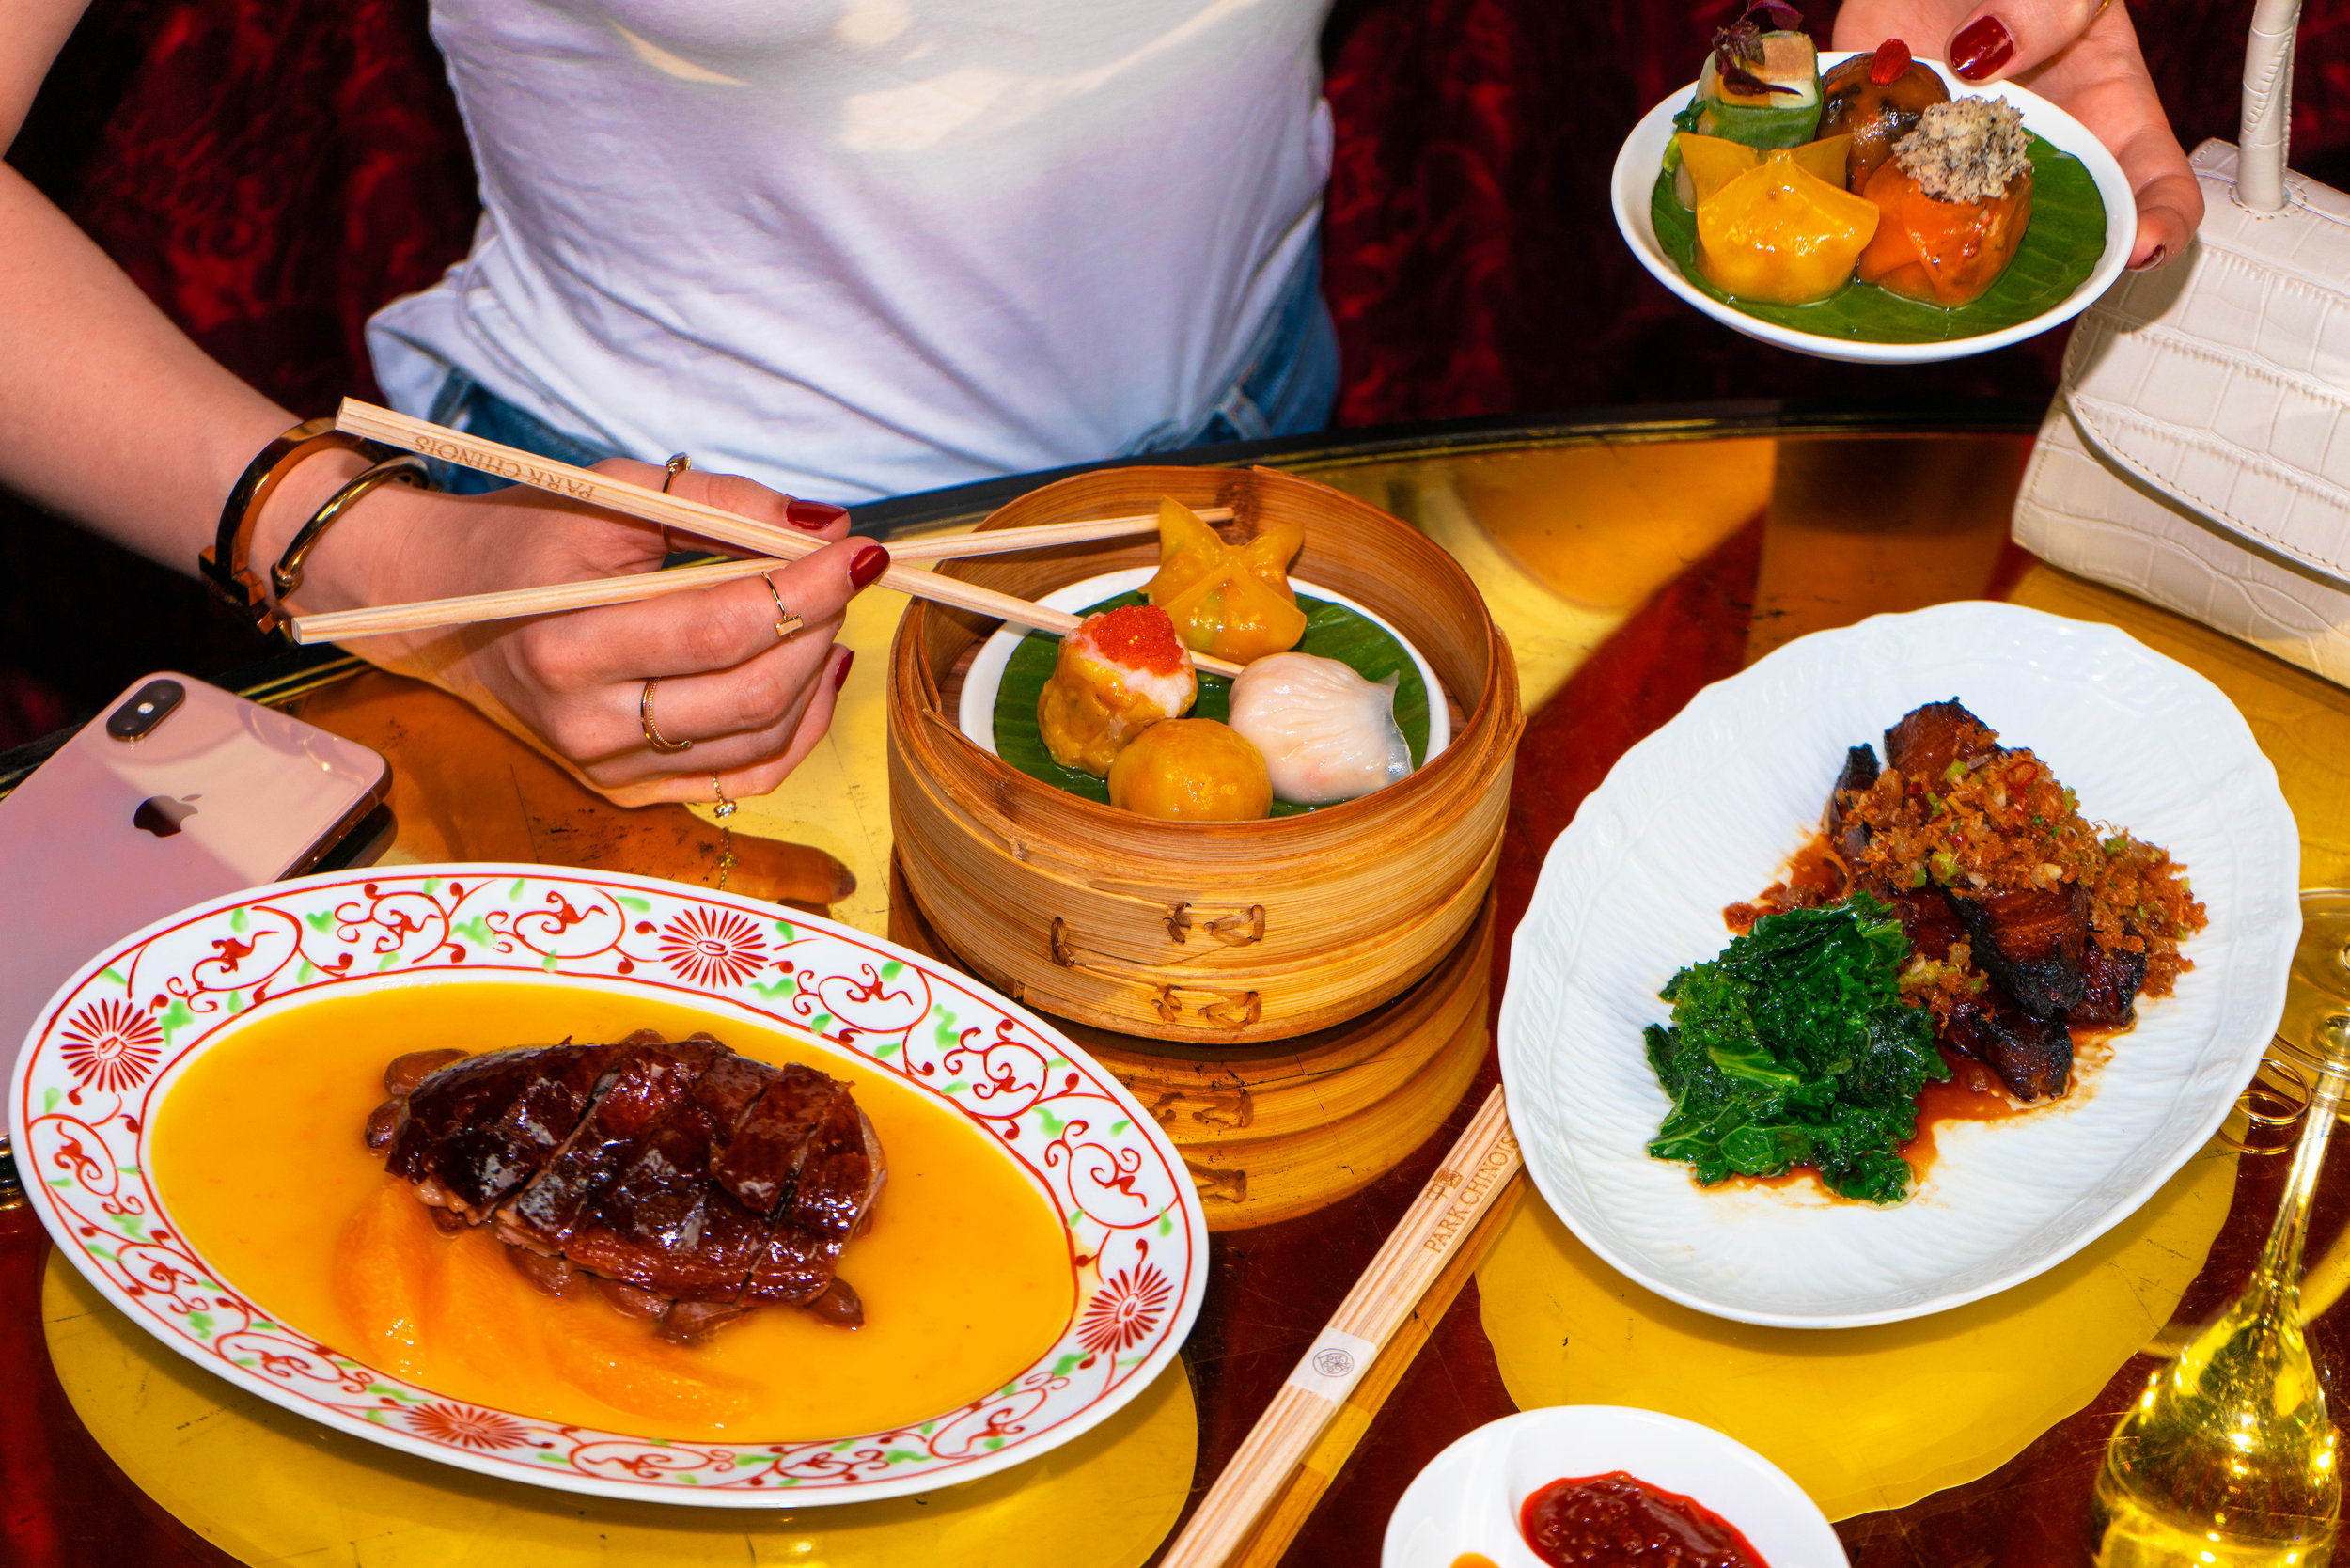 brunch at park chinois.jpg